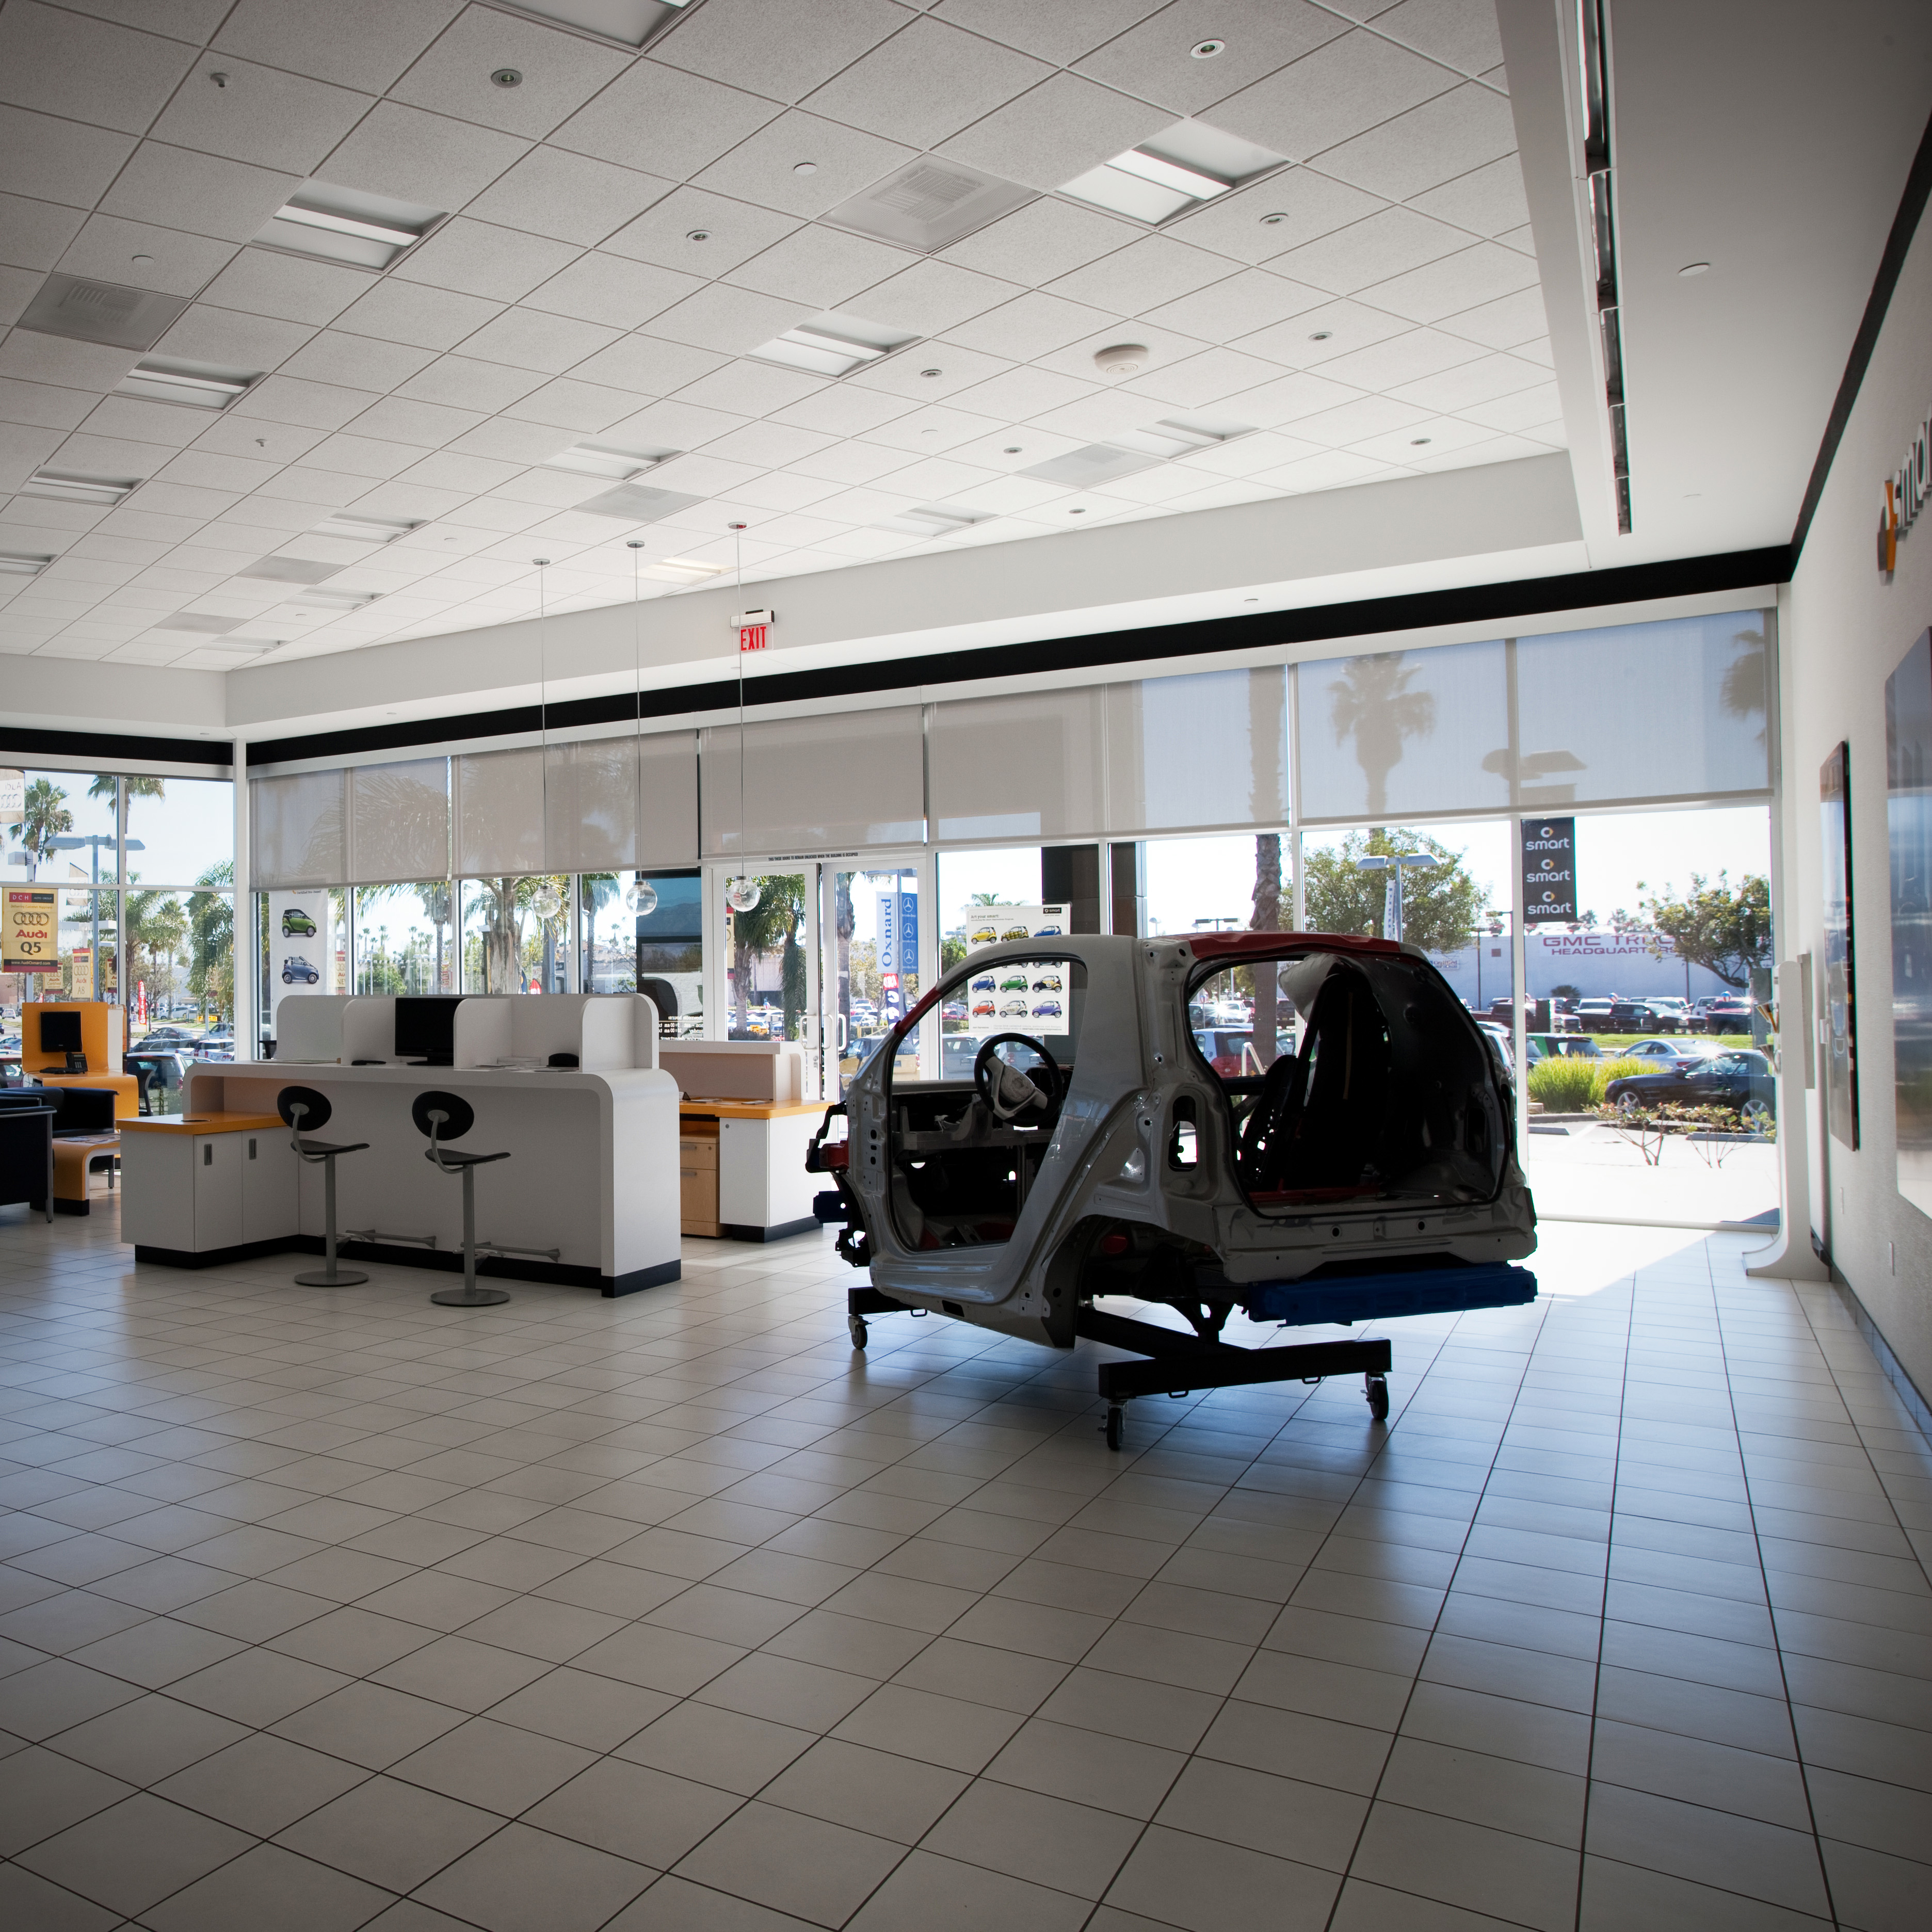 Mercedes benz of oxnard coupons near me in oxnard 8coupons for Mercedes benz repair near me